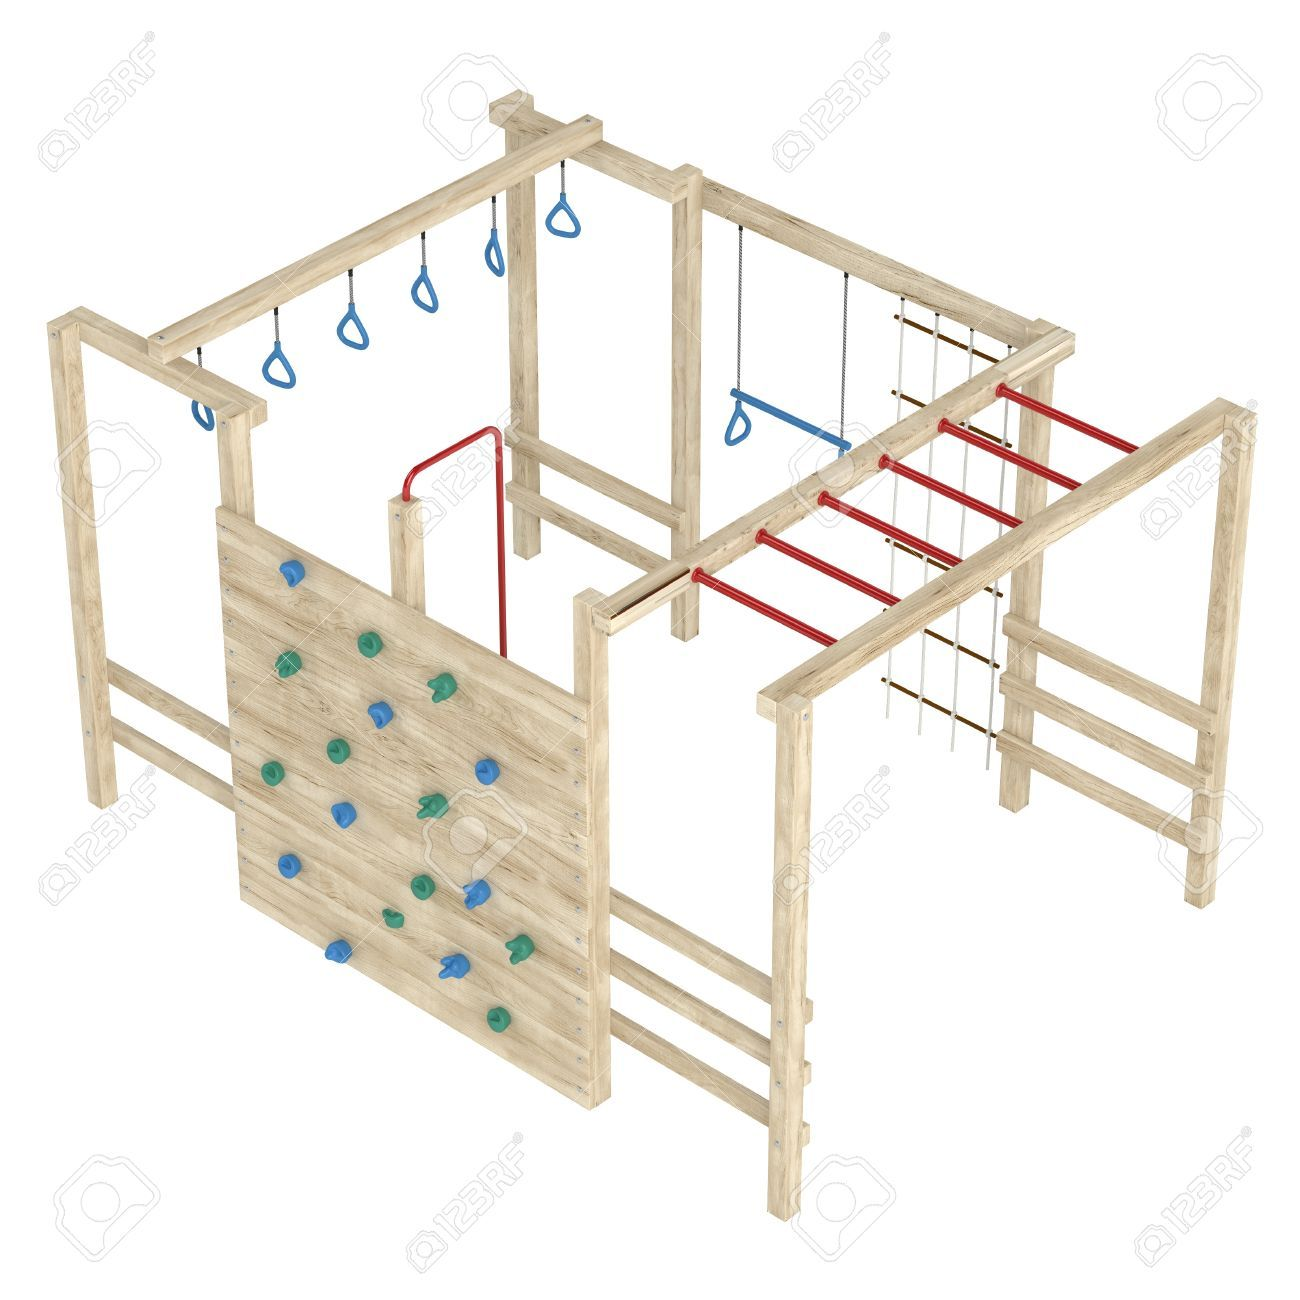 Wooden jungle gym or climbing frame with handholds, footholds ...